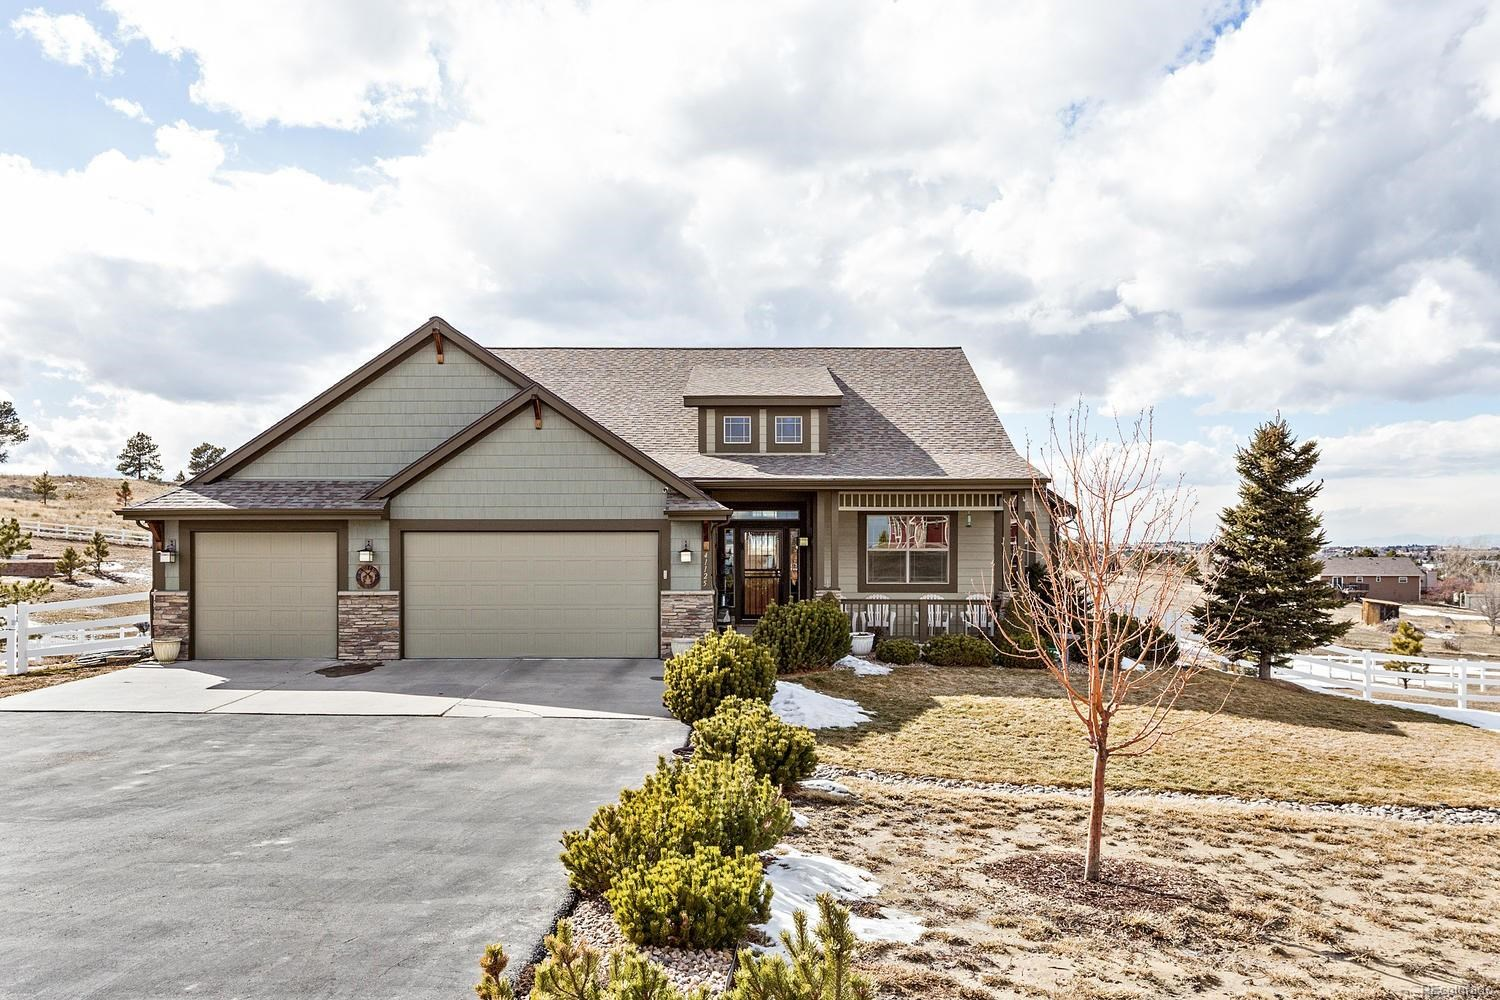 MLS# 1906264 - 1 - 41125 Round Hill Circle, Parker, CO 80138